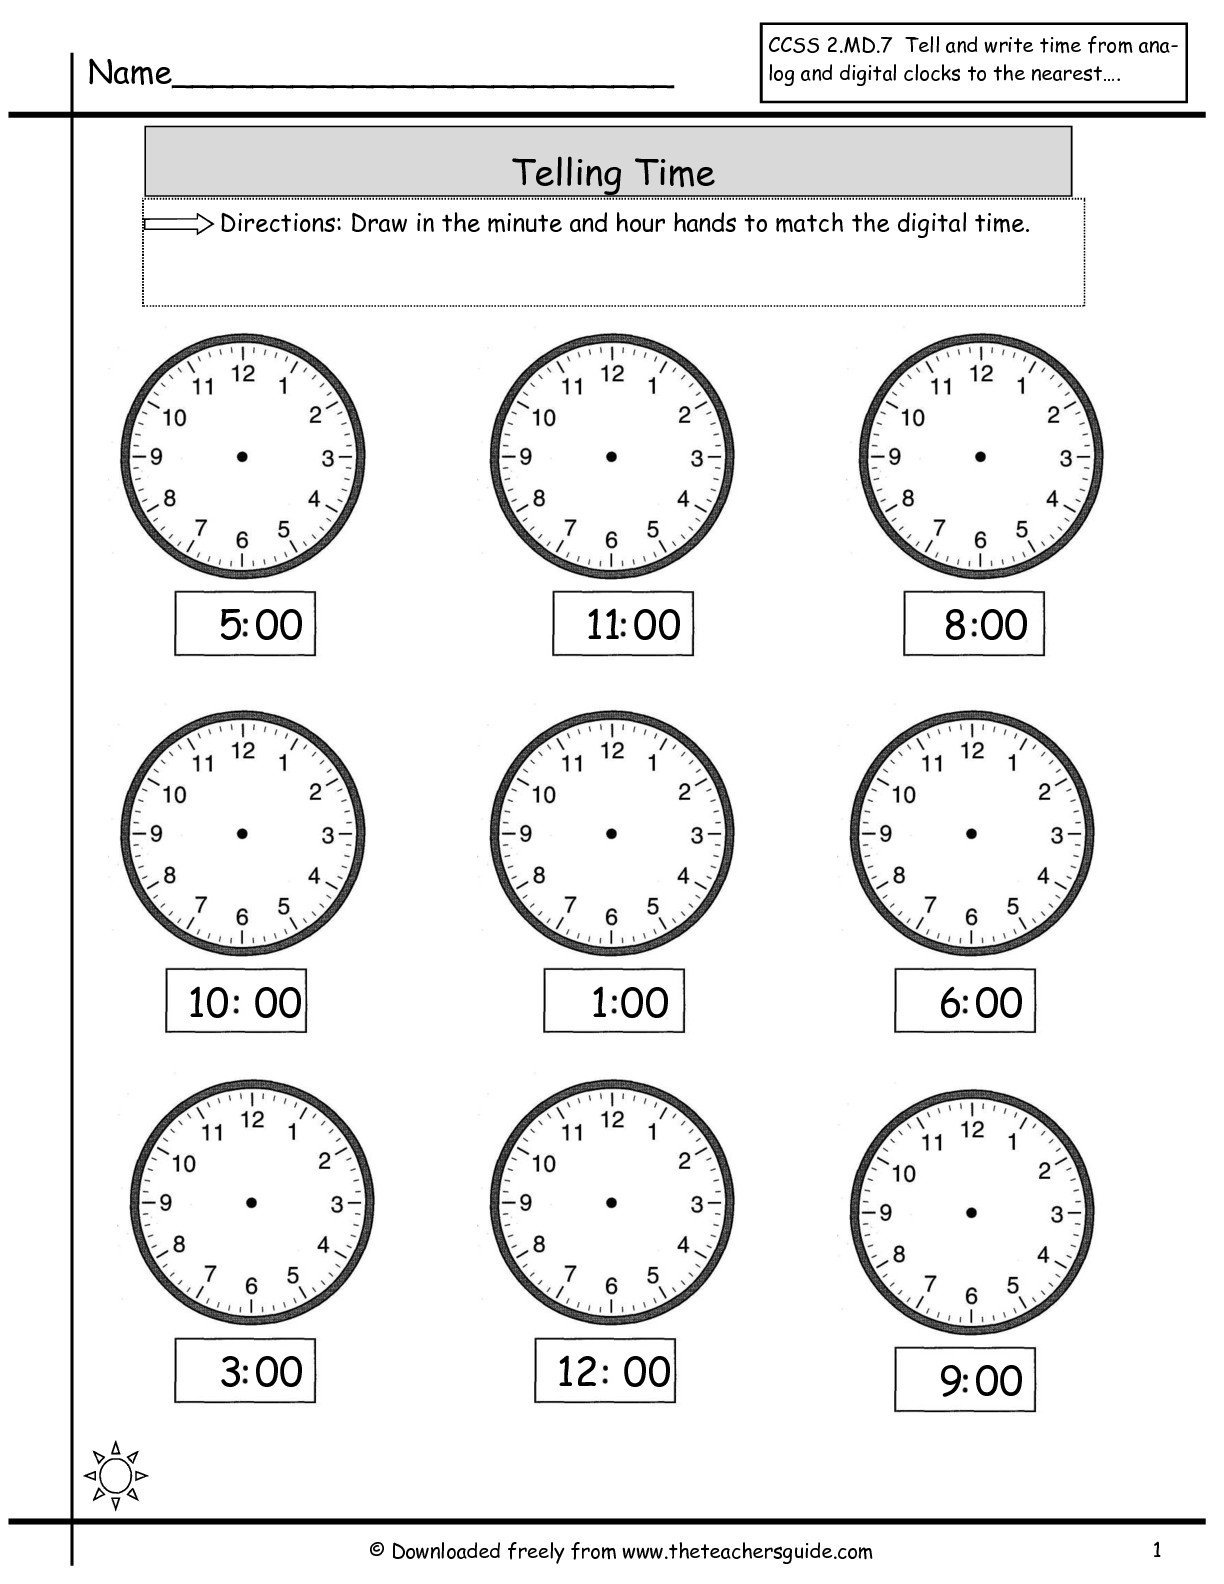 Telling Time Worksheets From The Teacher's Guide And Telling Time Worksheets Printable